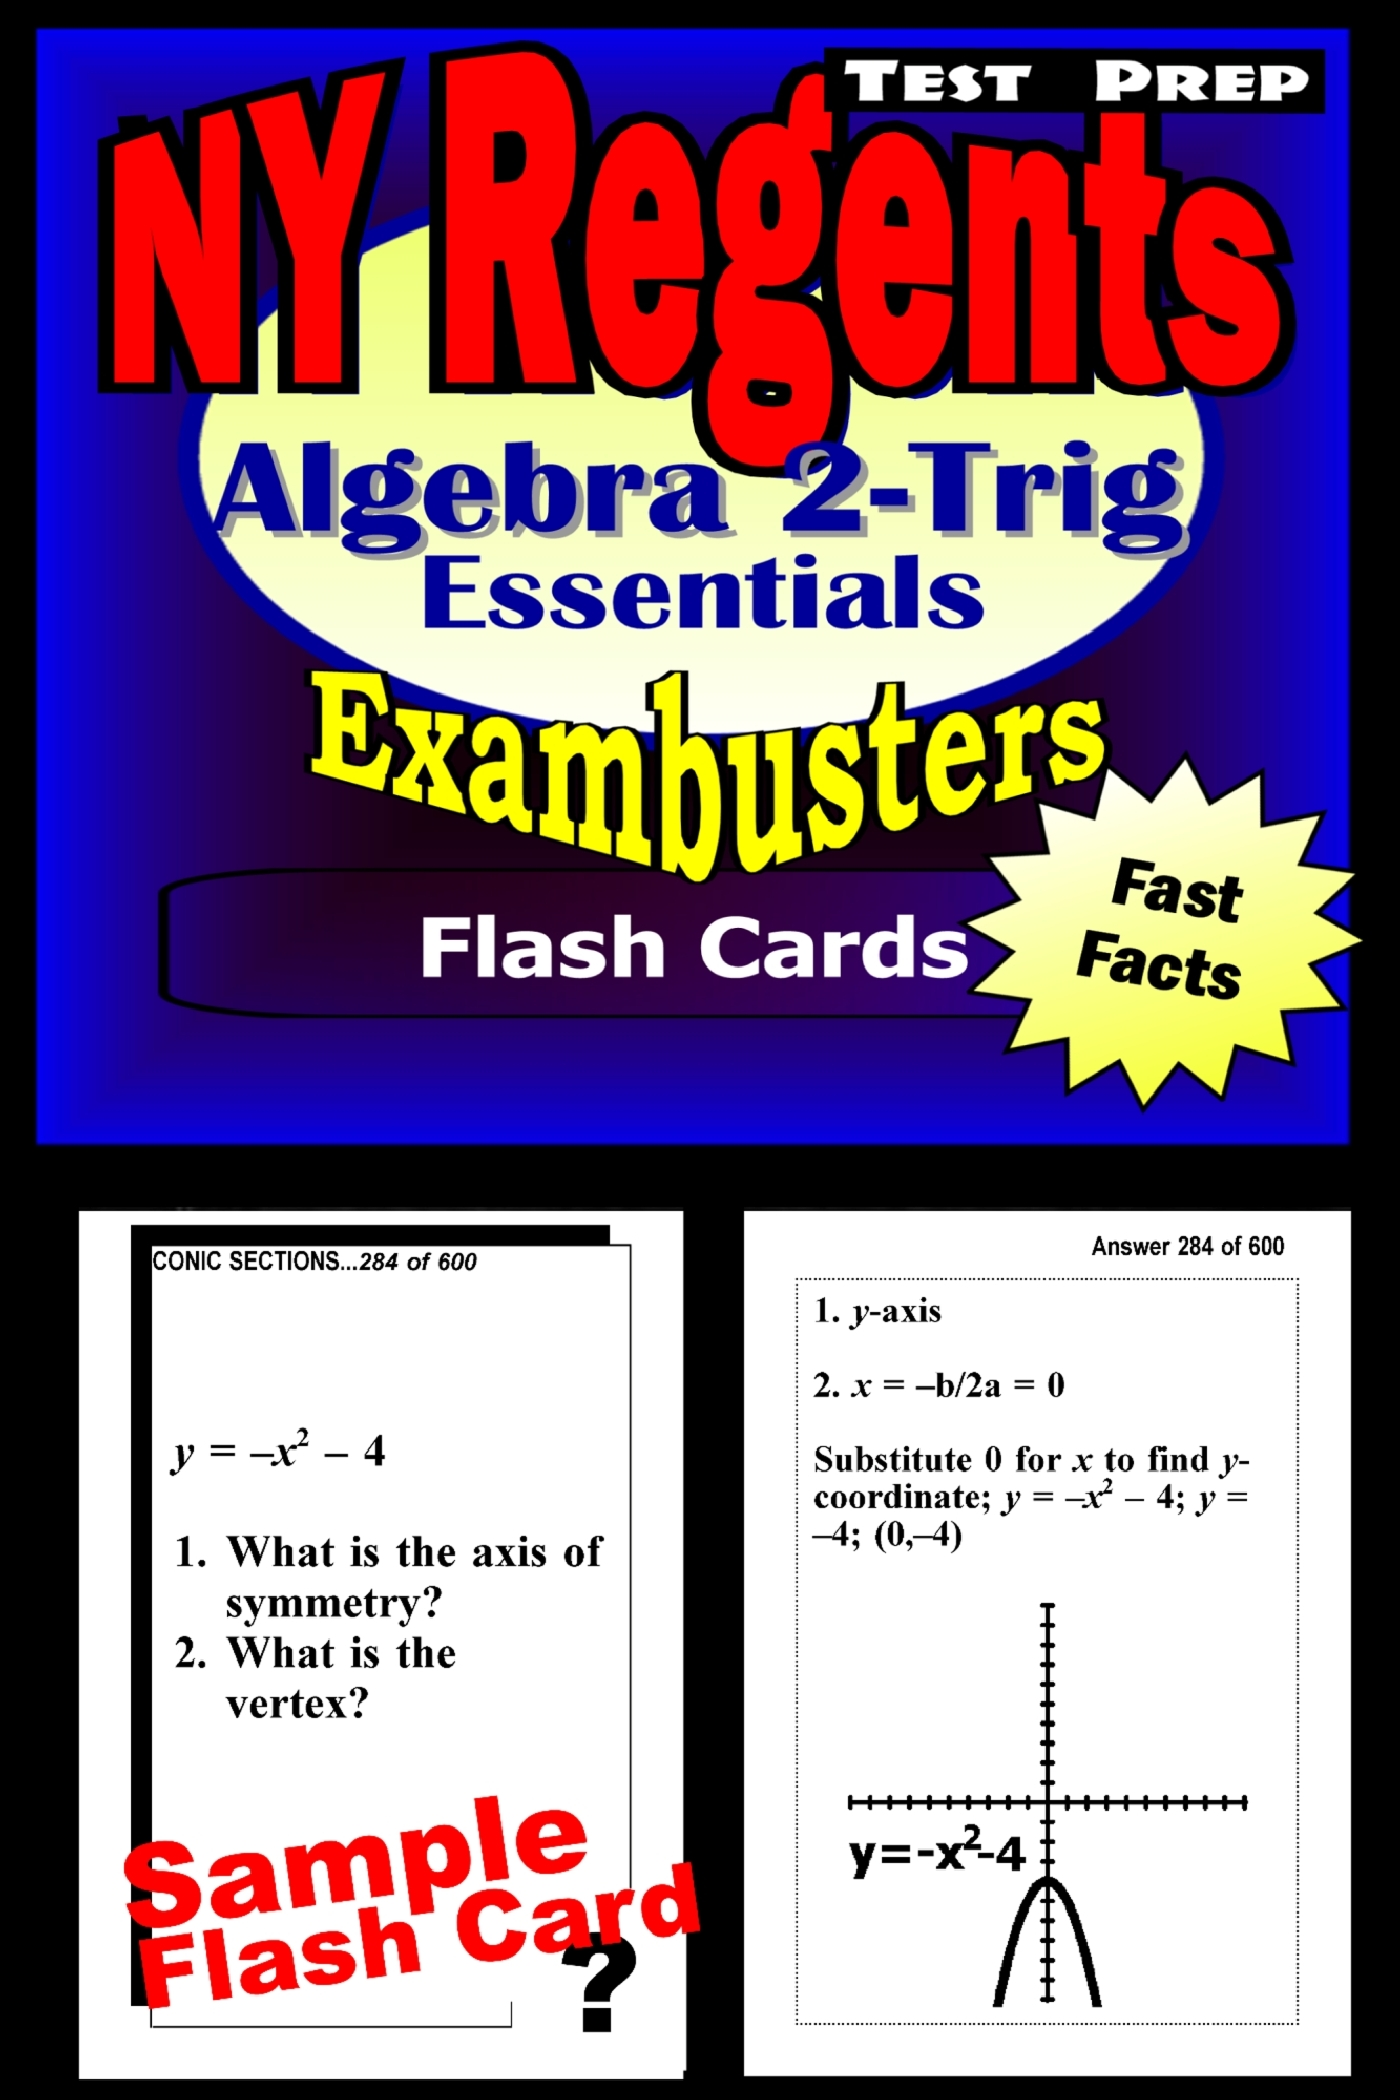 NY Regents Algebra 2-Trigonometry Test Prep Review--Exambusters Flashcards: New York Regents Exam Study Guide